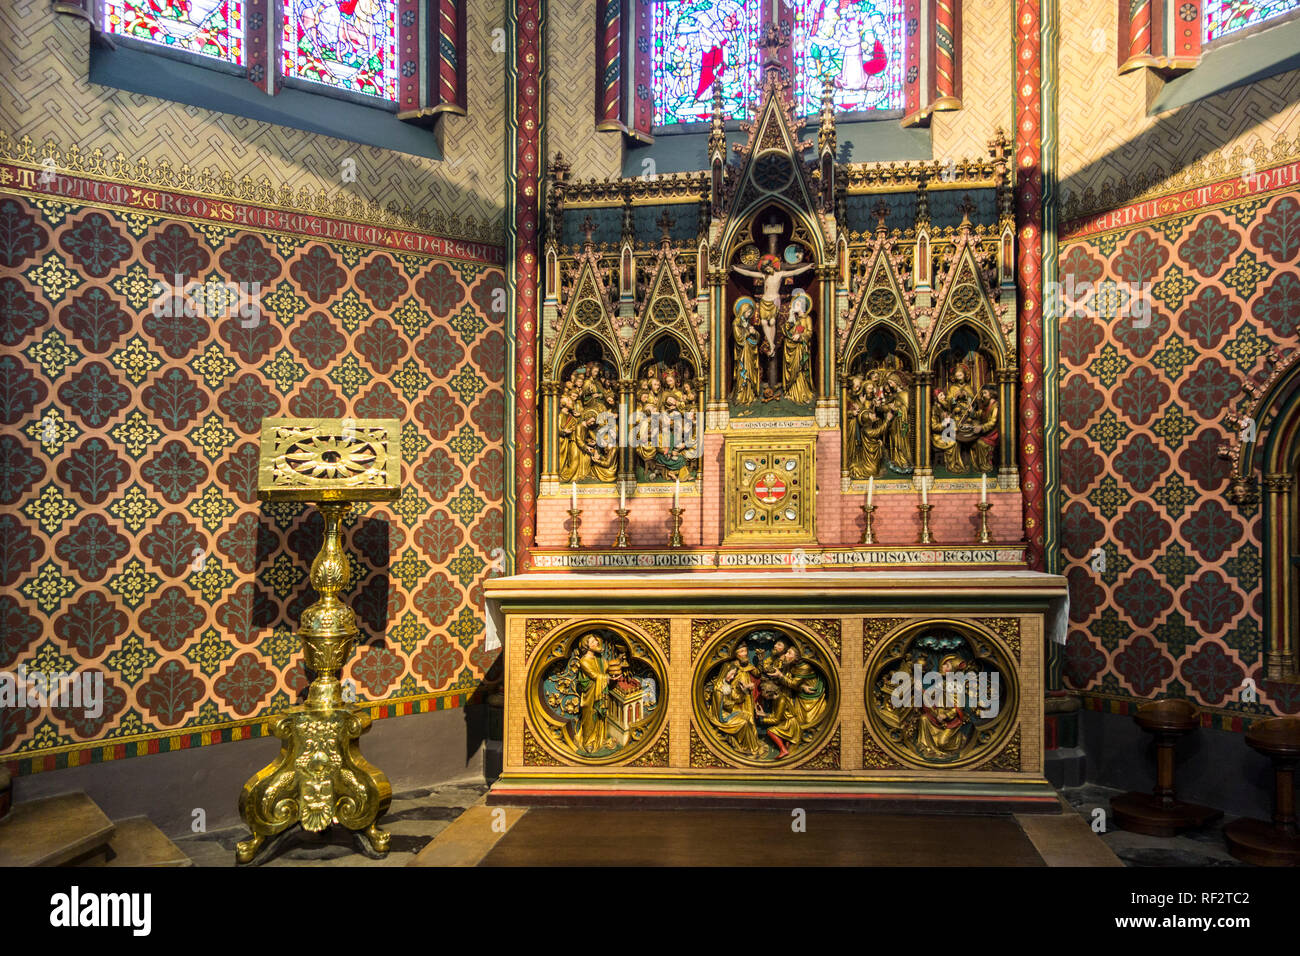 Lectern and altar in apse of the Church of Our Lady / Onze-Lieve-Vrouwekerk in the city Bruges, West Flanders, Belgium - Stock Image